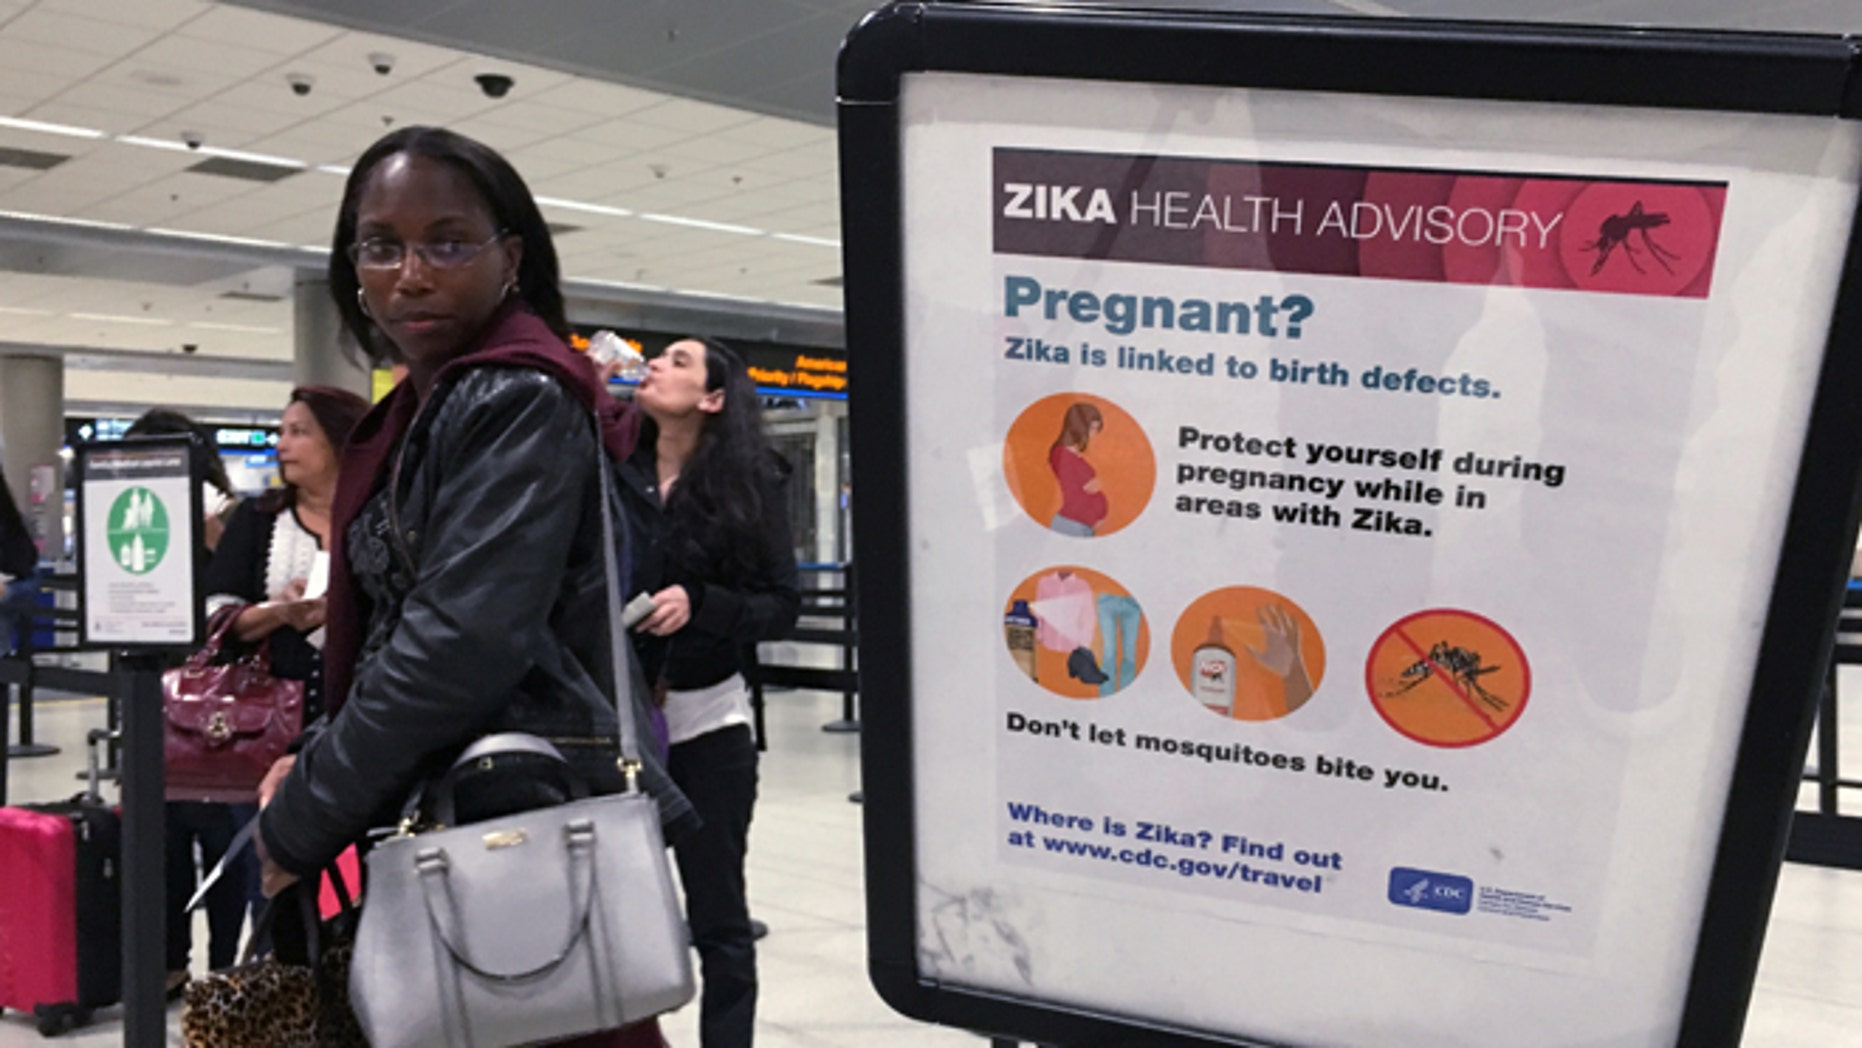 May 23, 2016: A woman looks at a Center for Disease Control (CDC) health advisory sign about the dangers of the Zika virus as she lines up for a security screening at Miami International Airport in Miami, Florida, U.S.